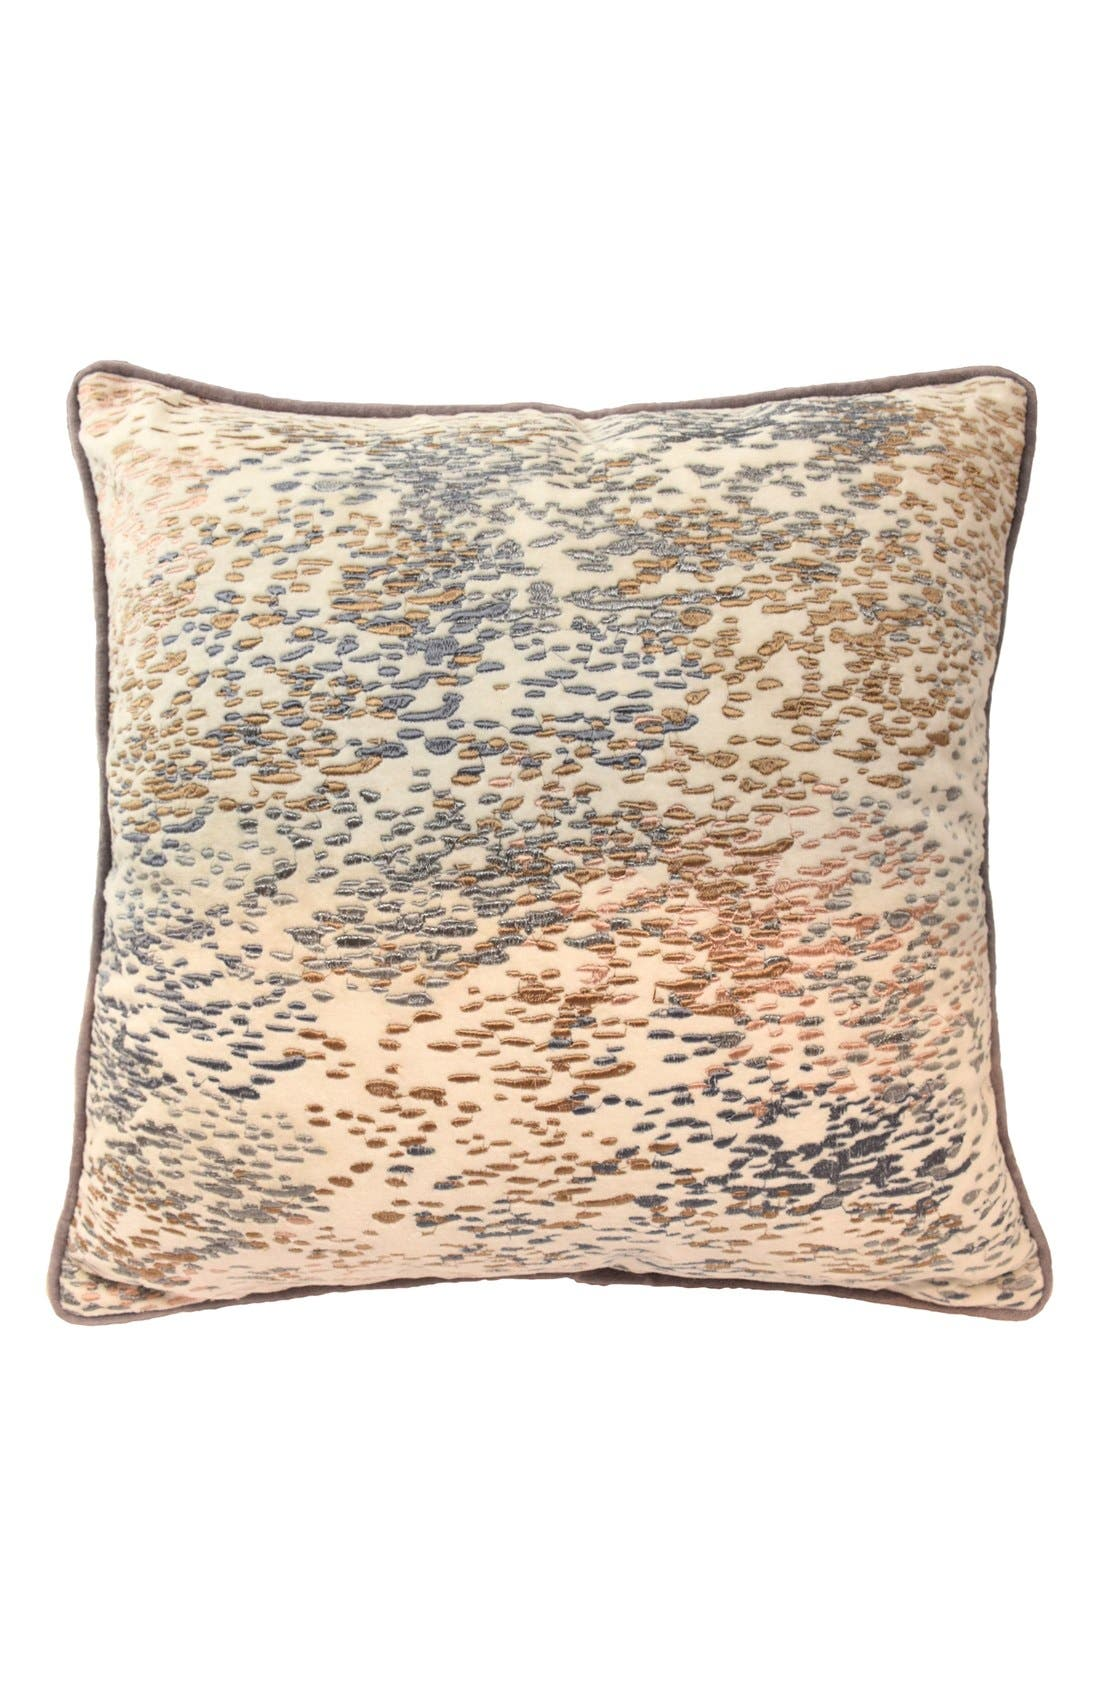 'Culturas' Pillow,                             Main thumbnail 1, color,                             060